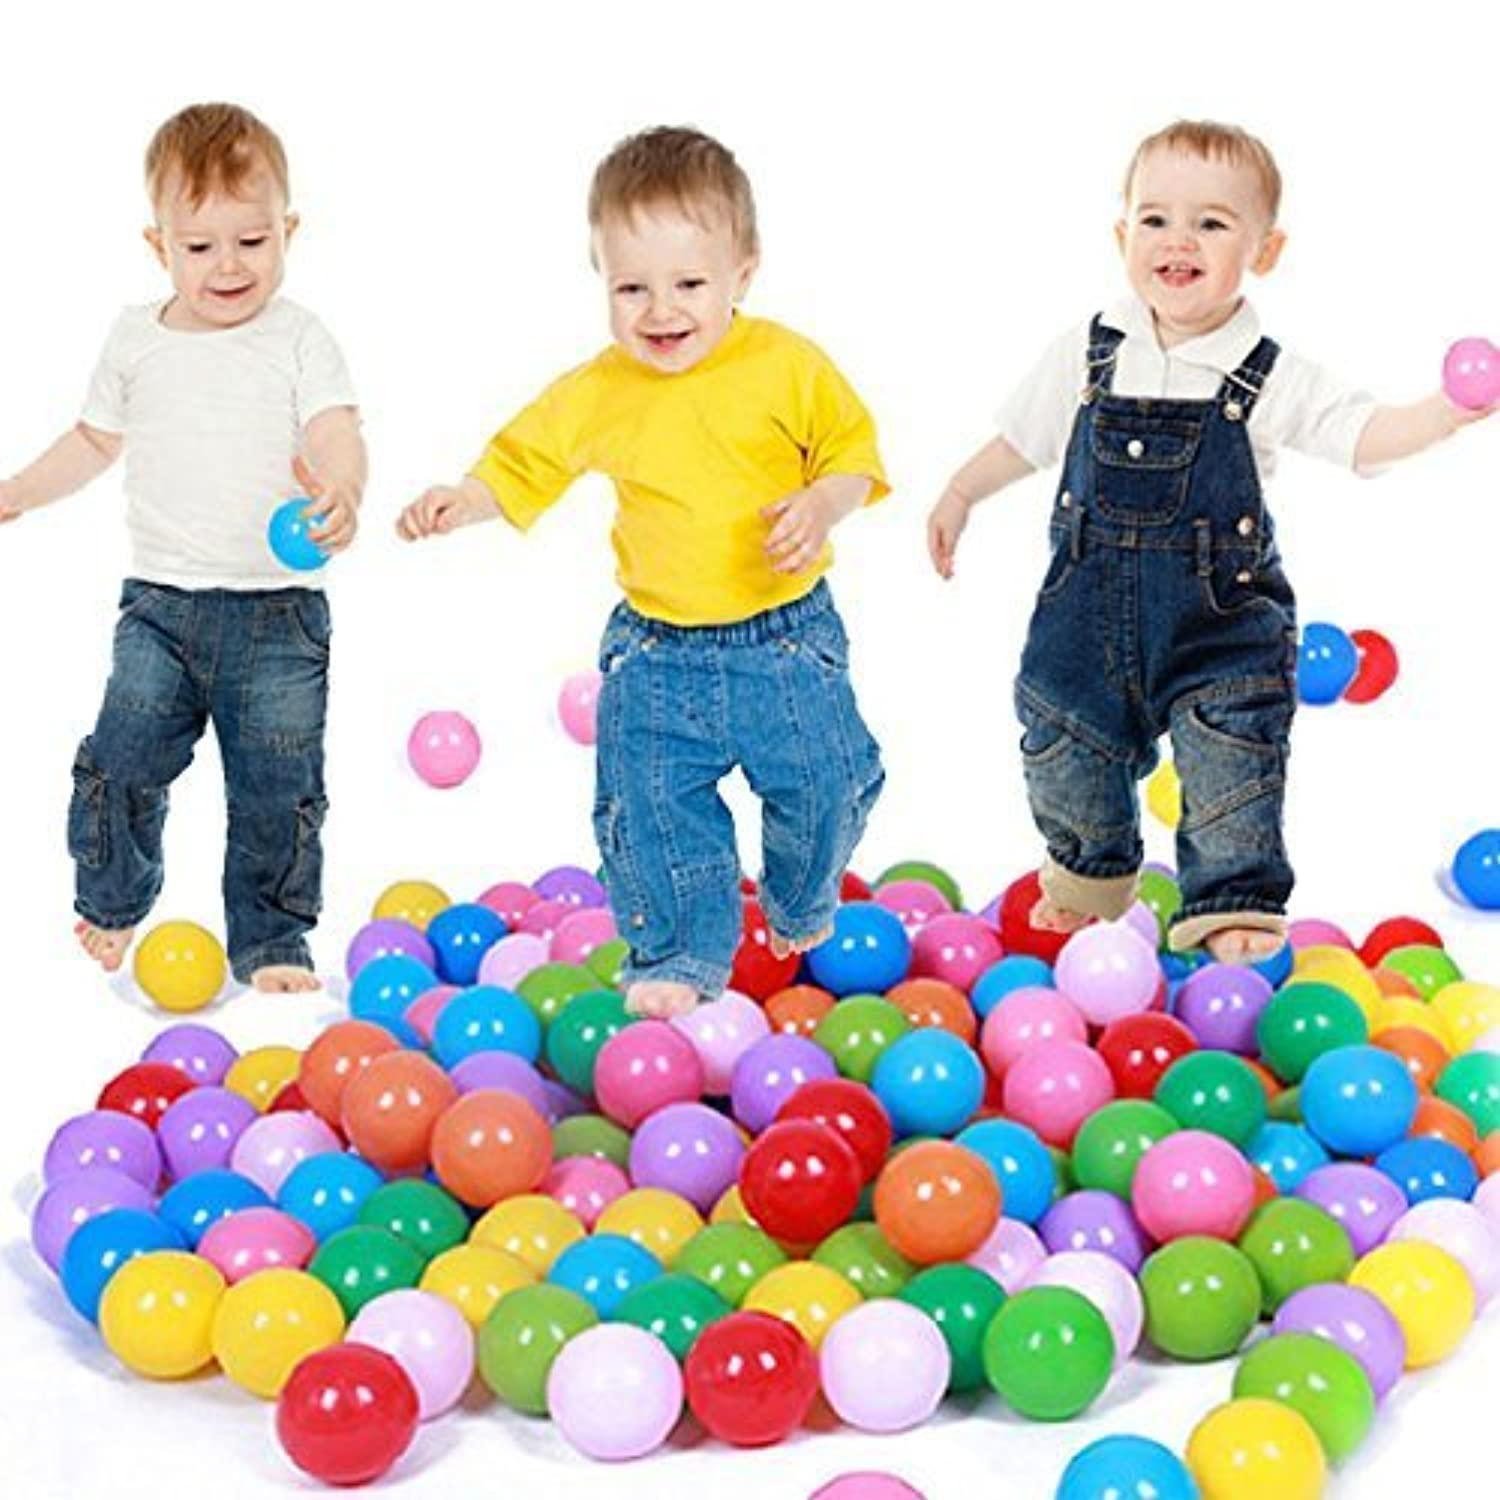 E Support 50PCS Colorful Plastic Ball Pit Balls Baby Kids Tent Swim Toys Ball Pool Ball Ocean Ball by E Support